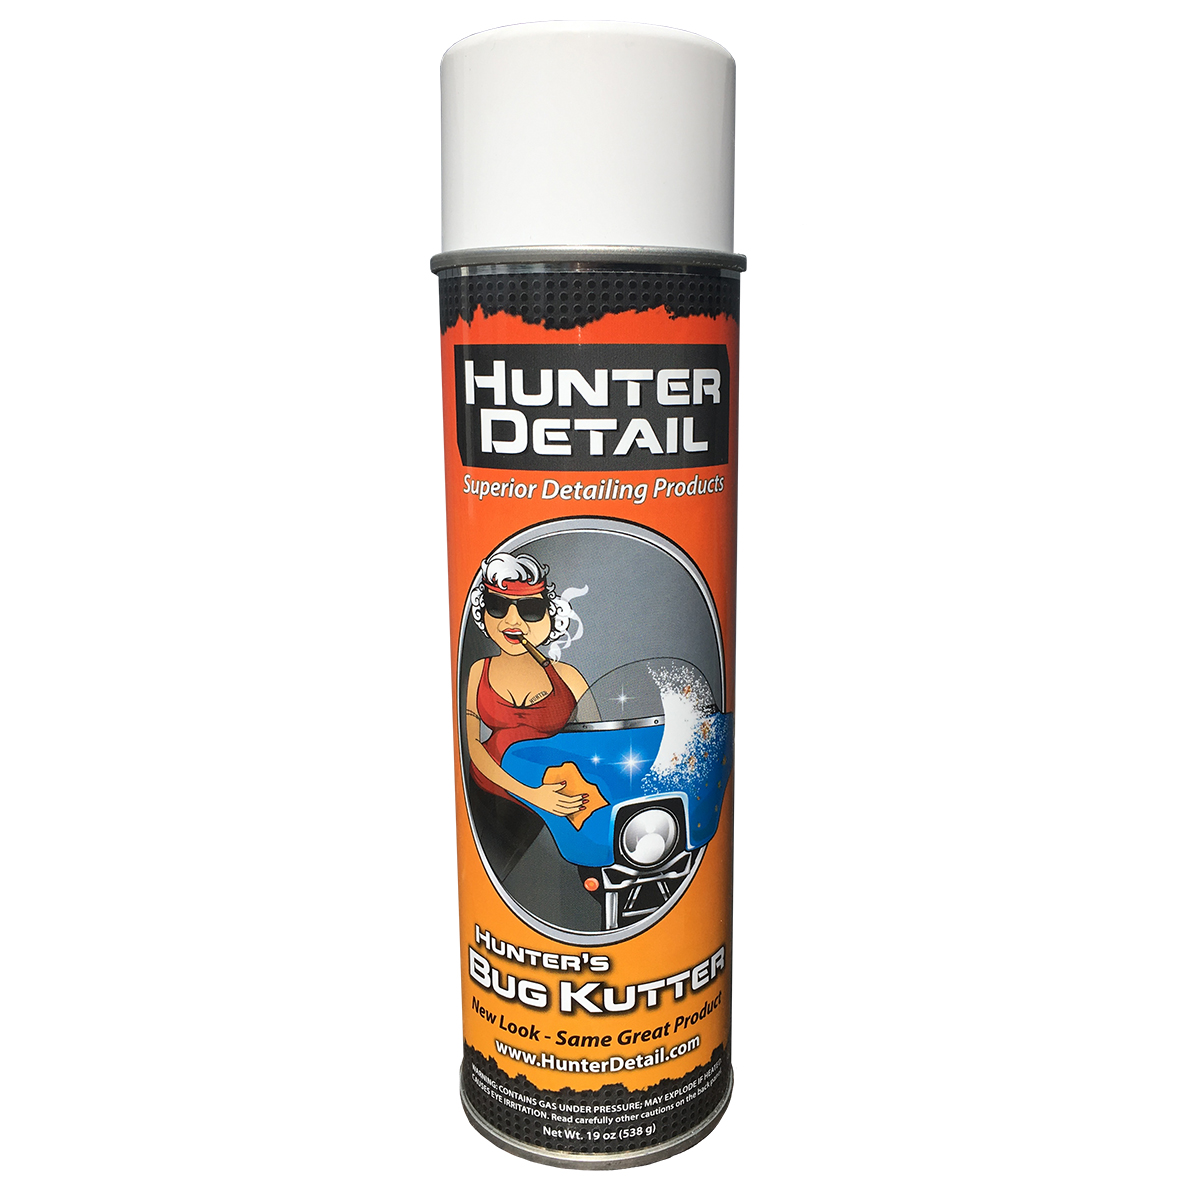 www.hunterdetail.com